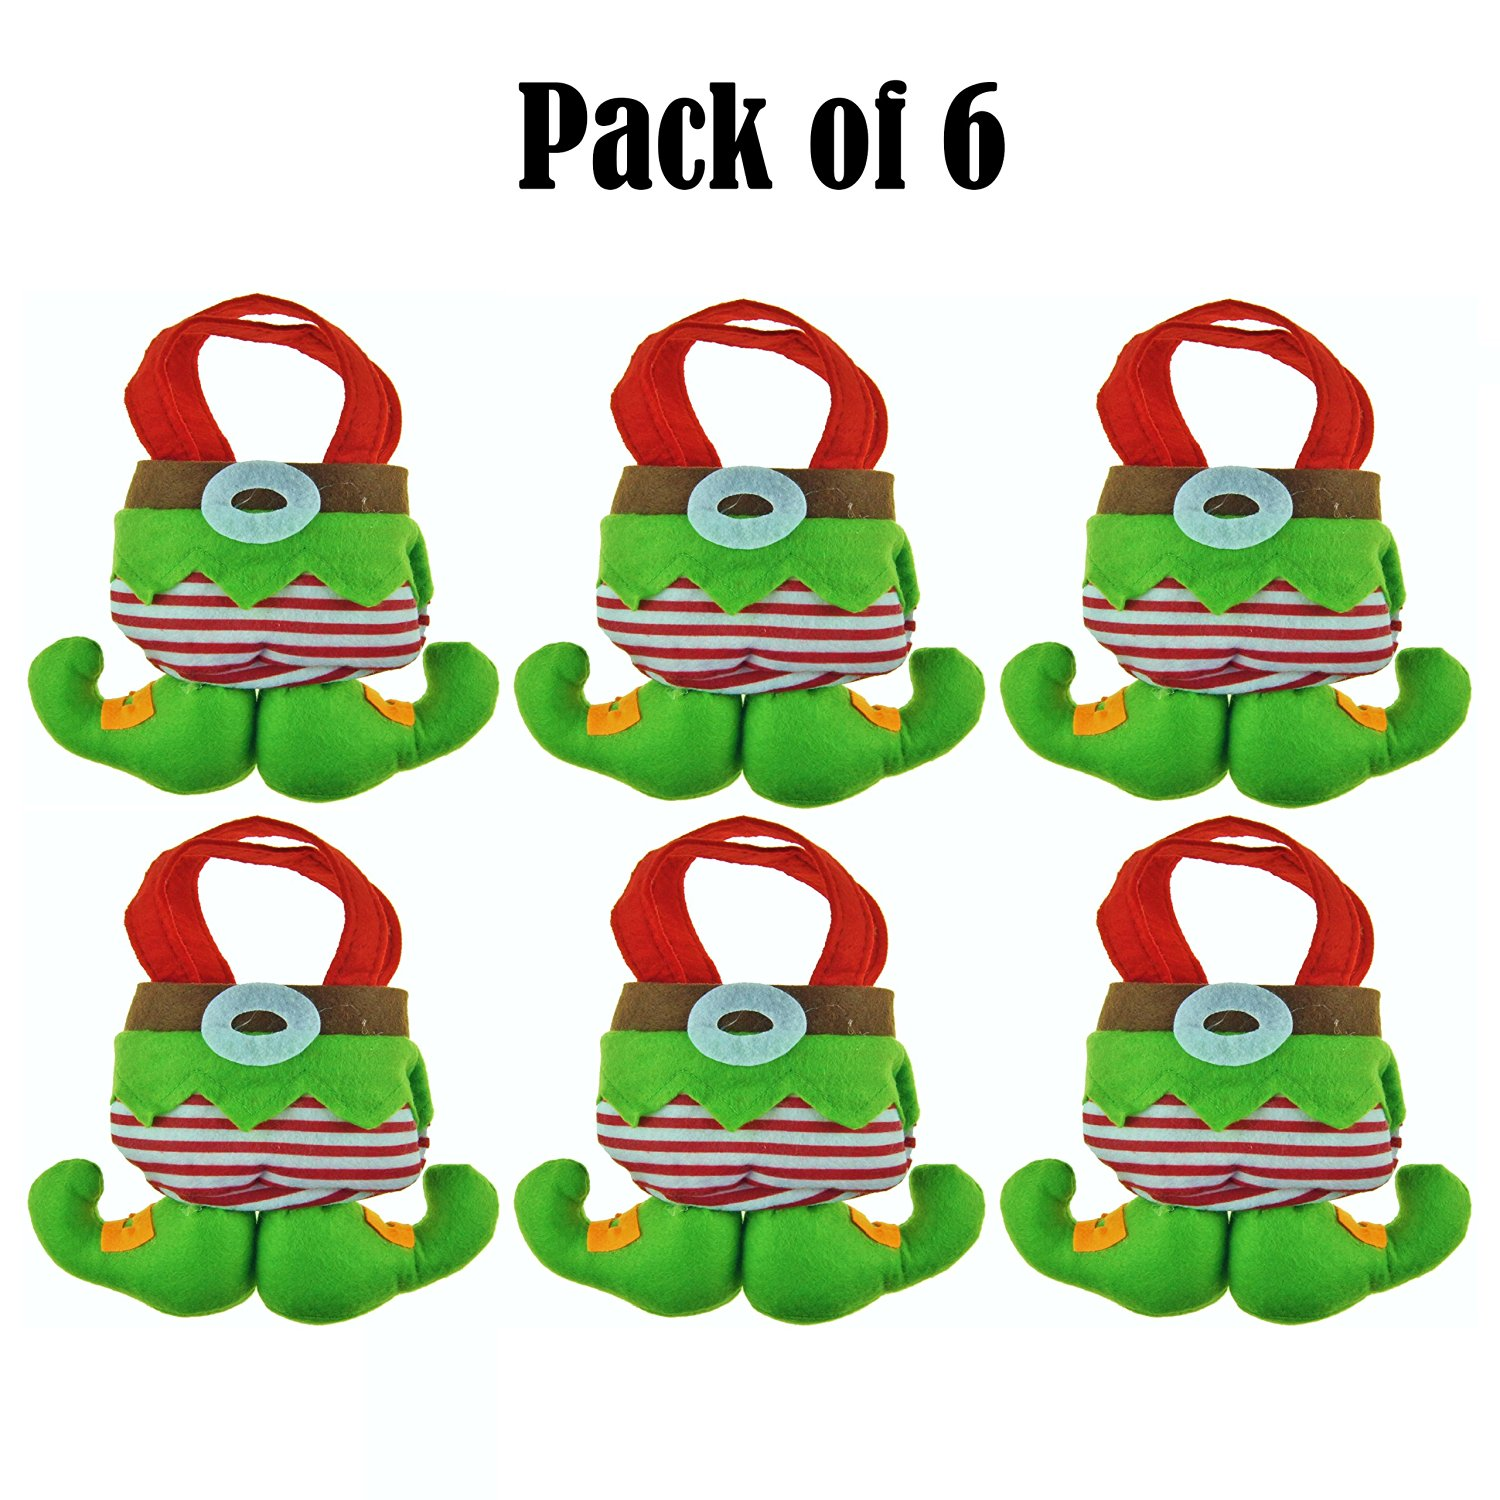 Ivenf #CYBER MONDAY SPECIAL OFFER# Felt 3D Little Elf Christmas Gift & Treat Bags Wrap Christmas Tree Decoration